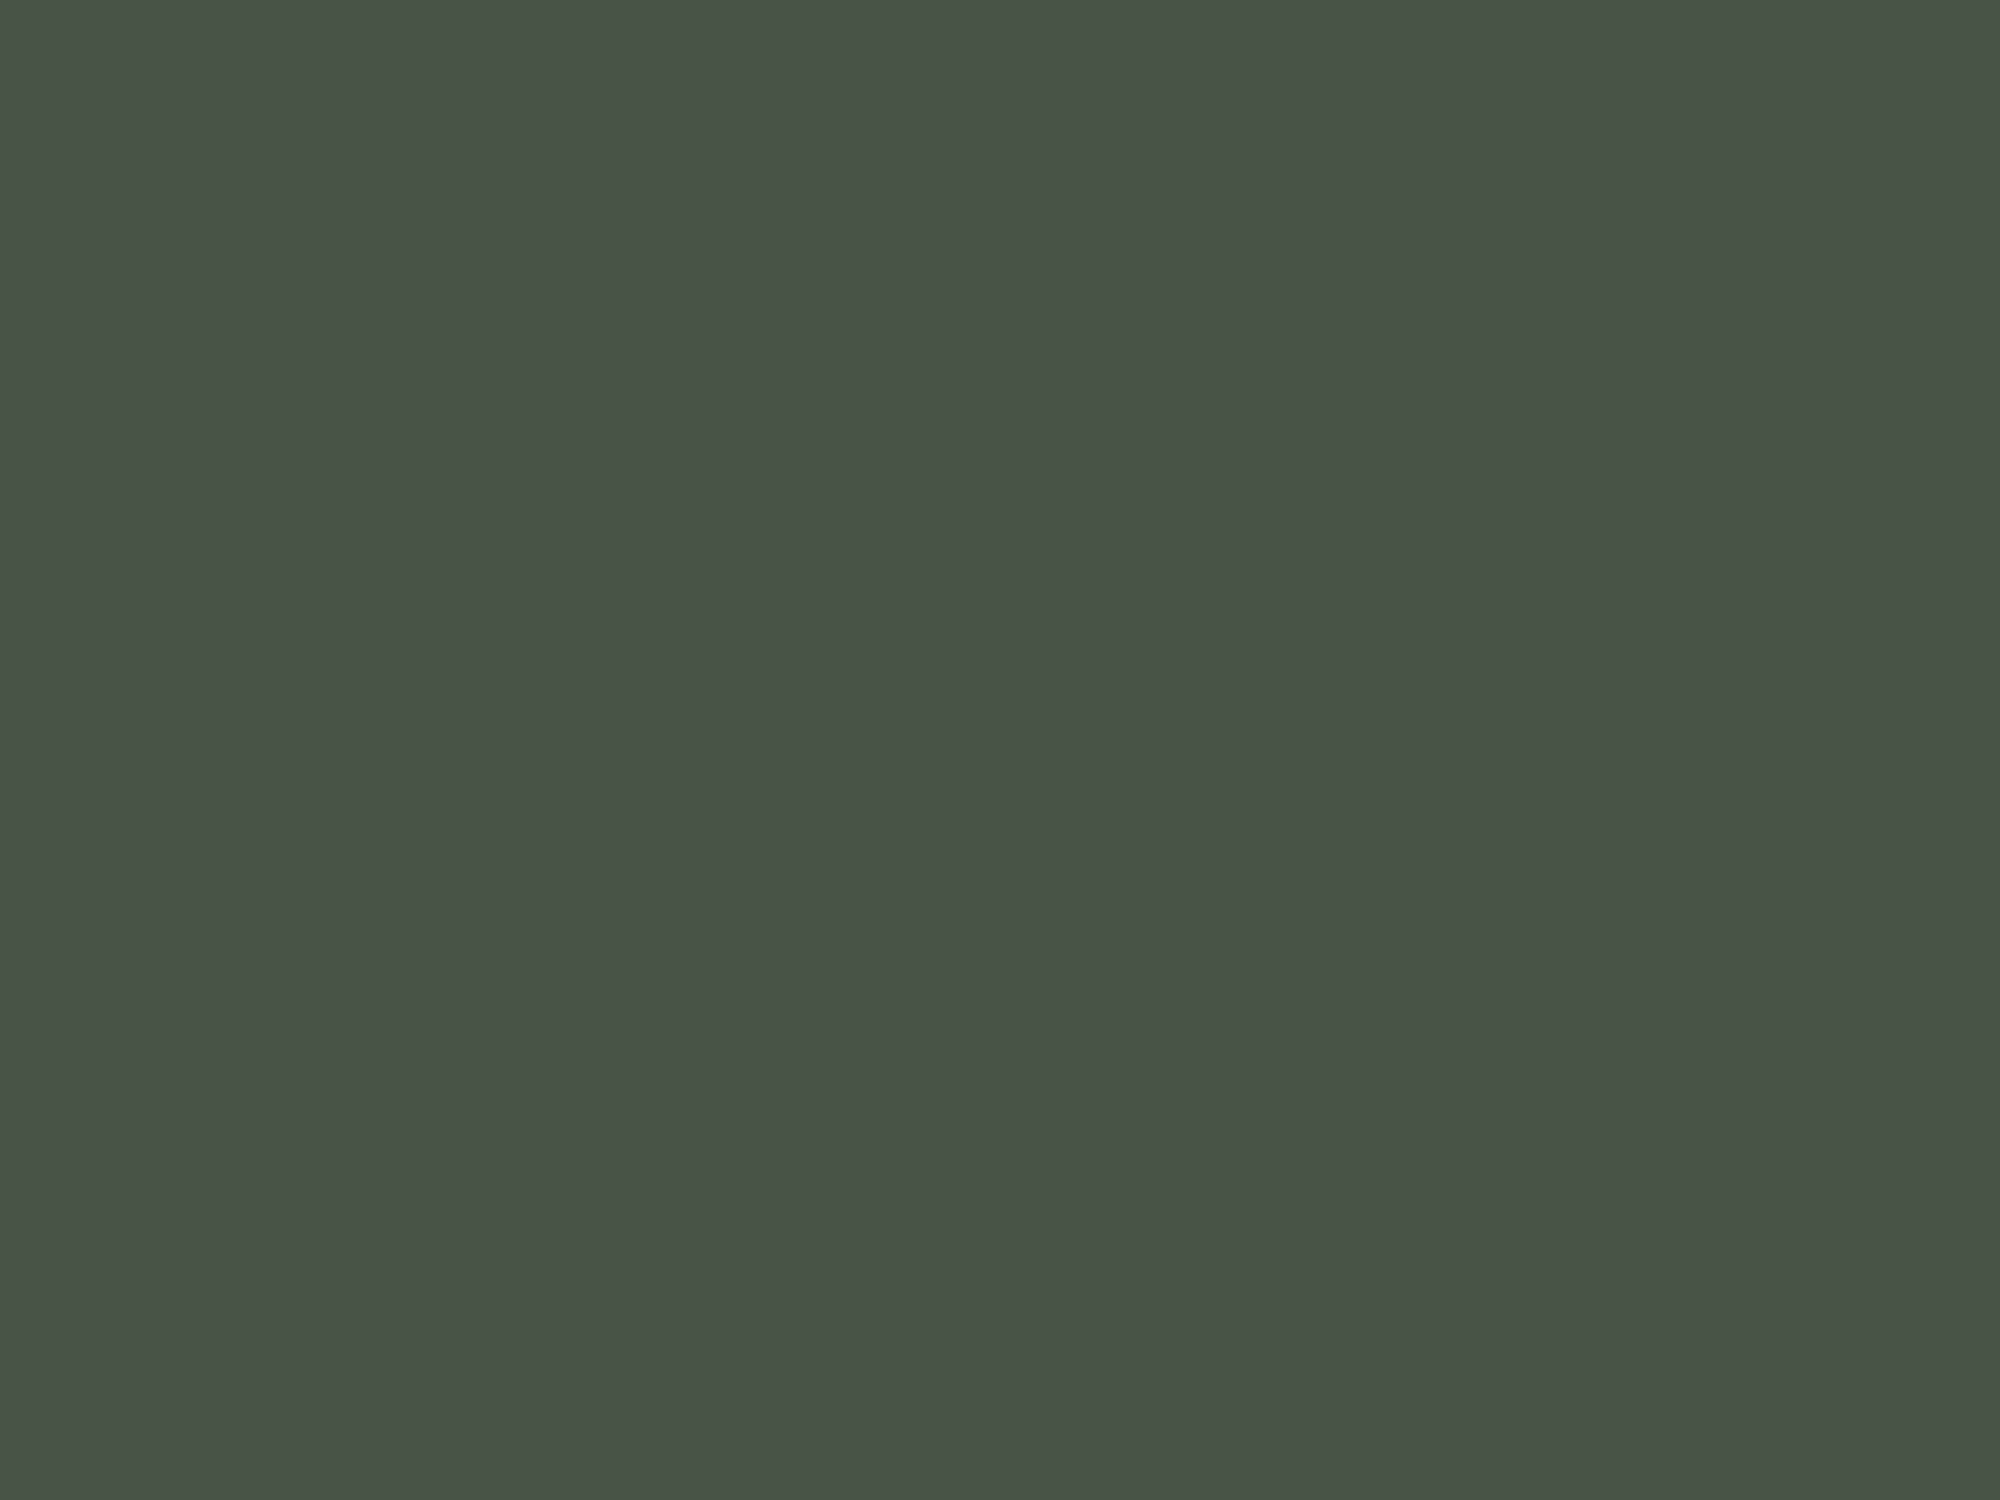 - 44. NCS S 7010- G30Y* GREEN